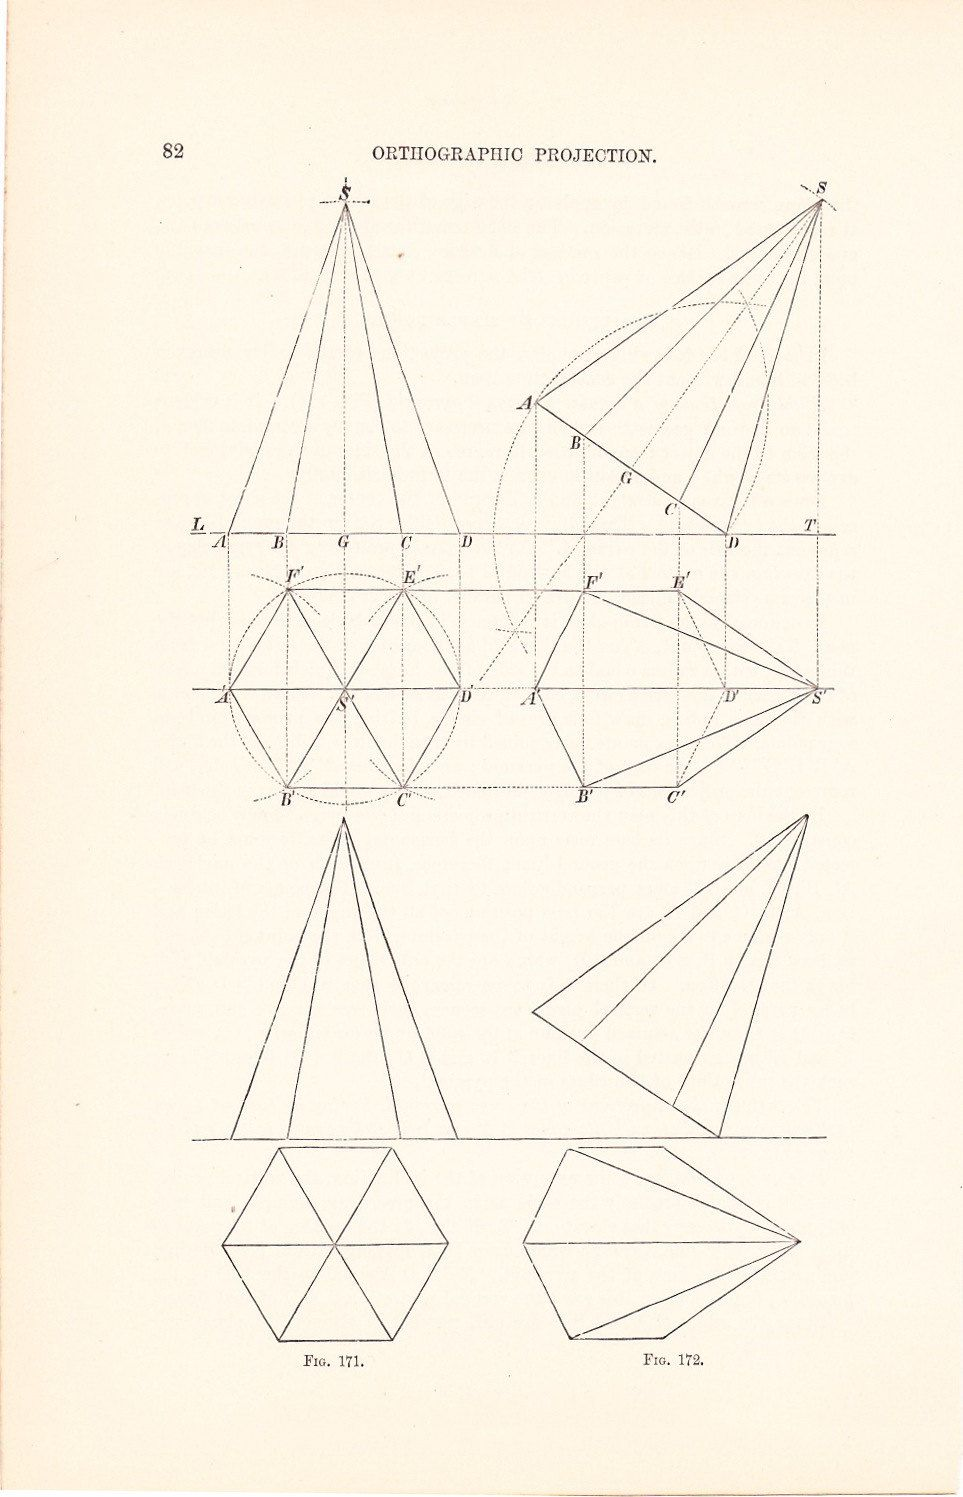 1886 technical drawing antique math geometric mechanical drafting 1886 technical drawing antique math geometric mechanical drafting interior design blueprint art illustration framing 100 years old malvernweather Image collections